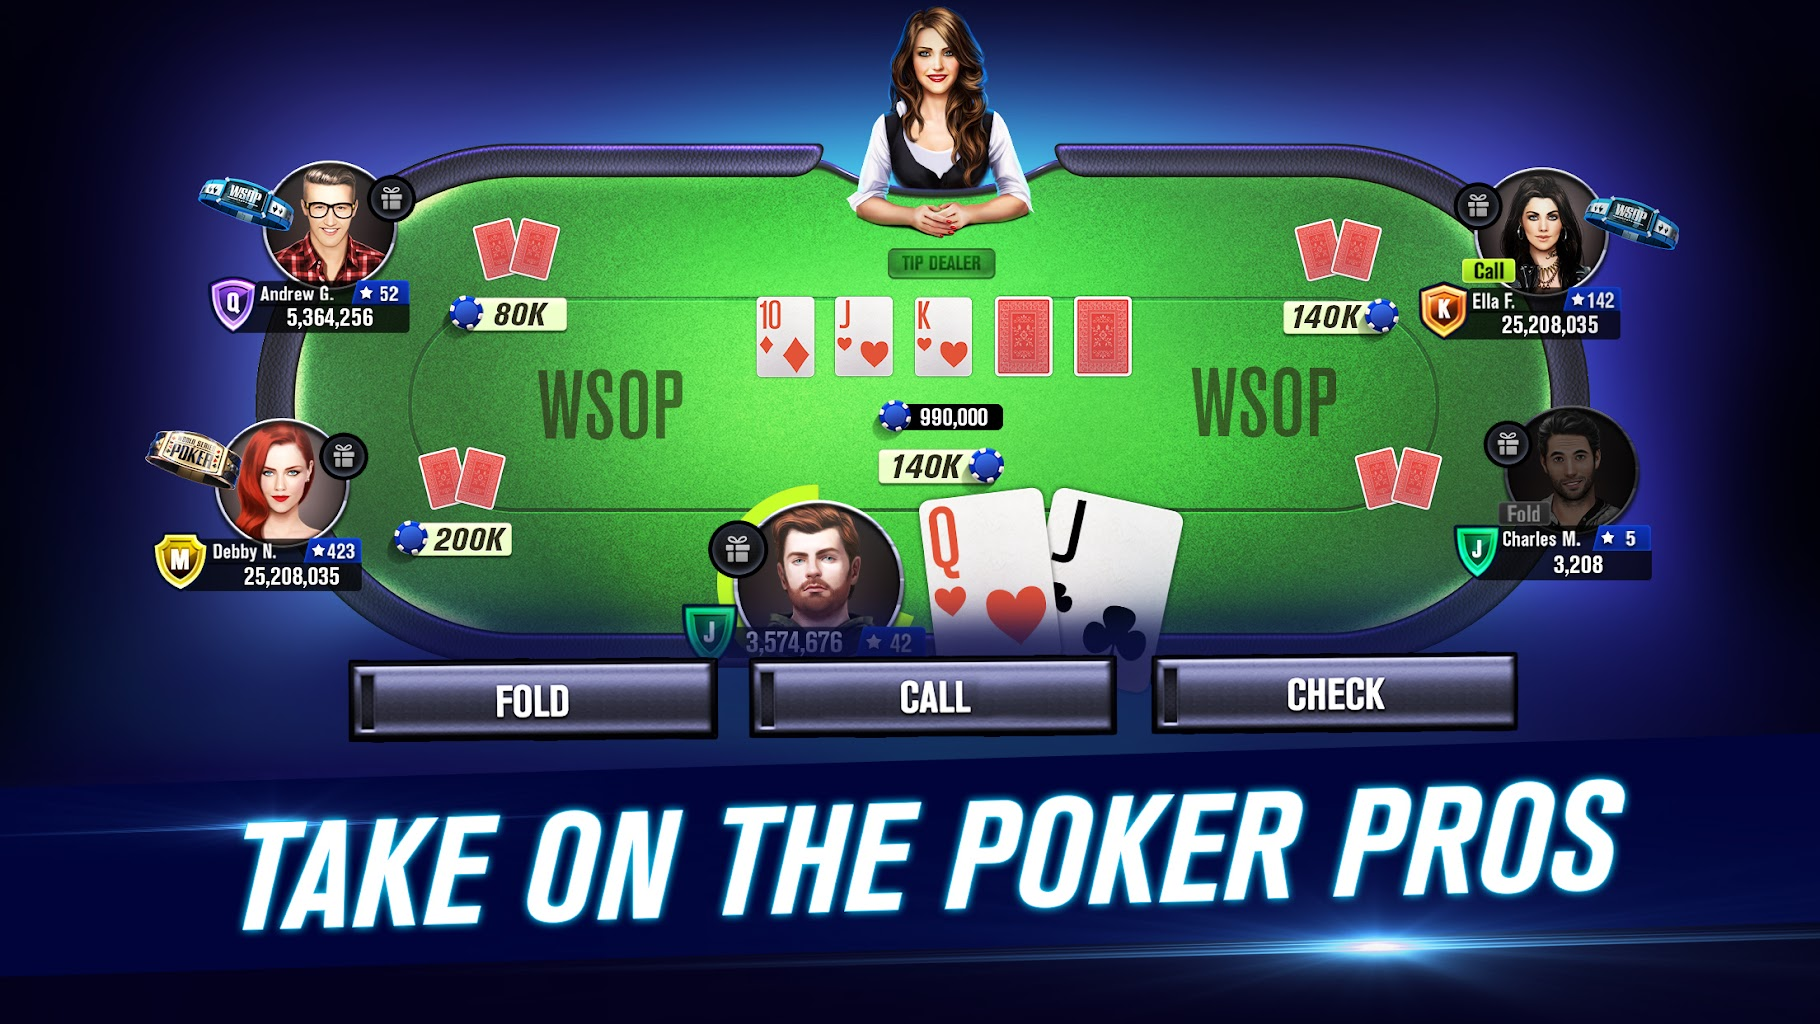 World Series Of Poker Wsop Free Texas Holdem Poker 8 4 0 Apk Download Com Playtika Wsop Gp Apk Free